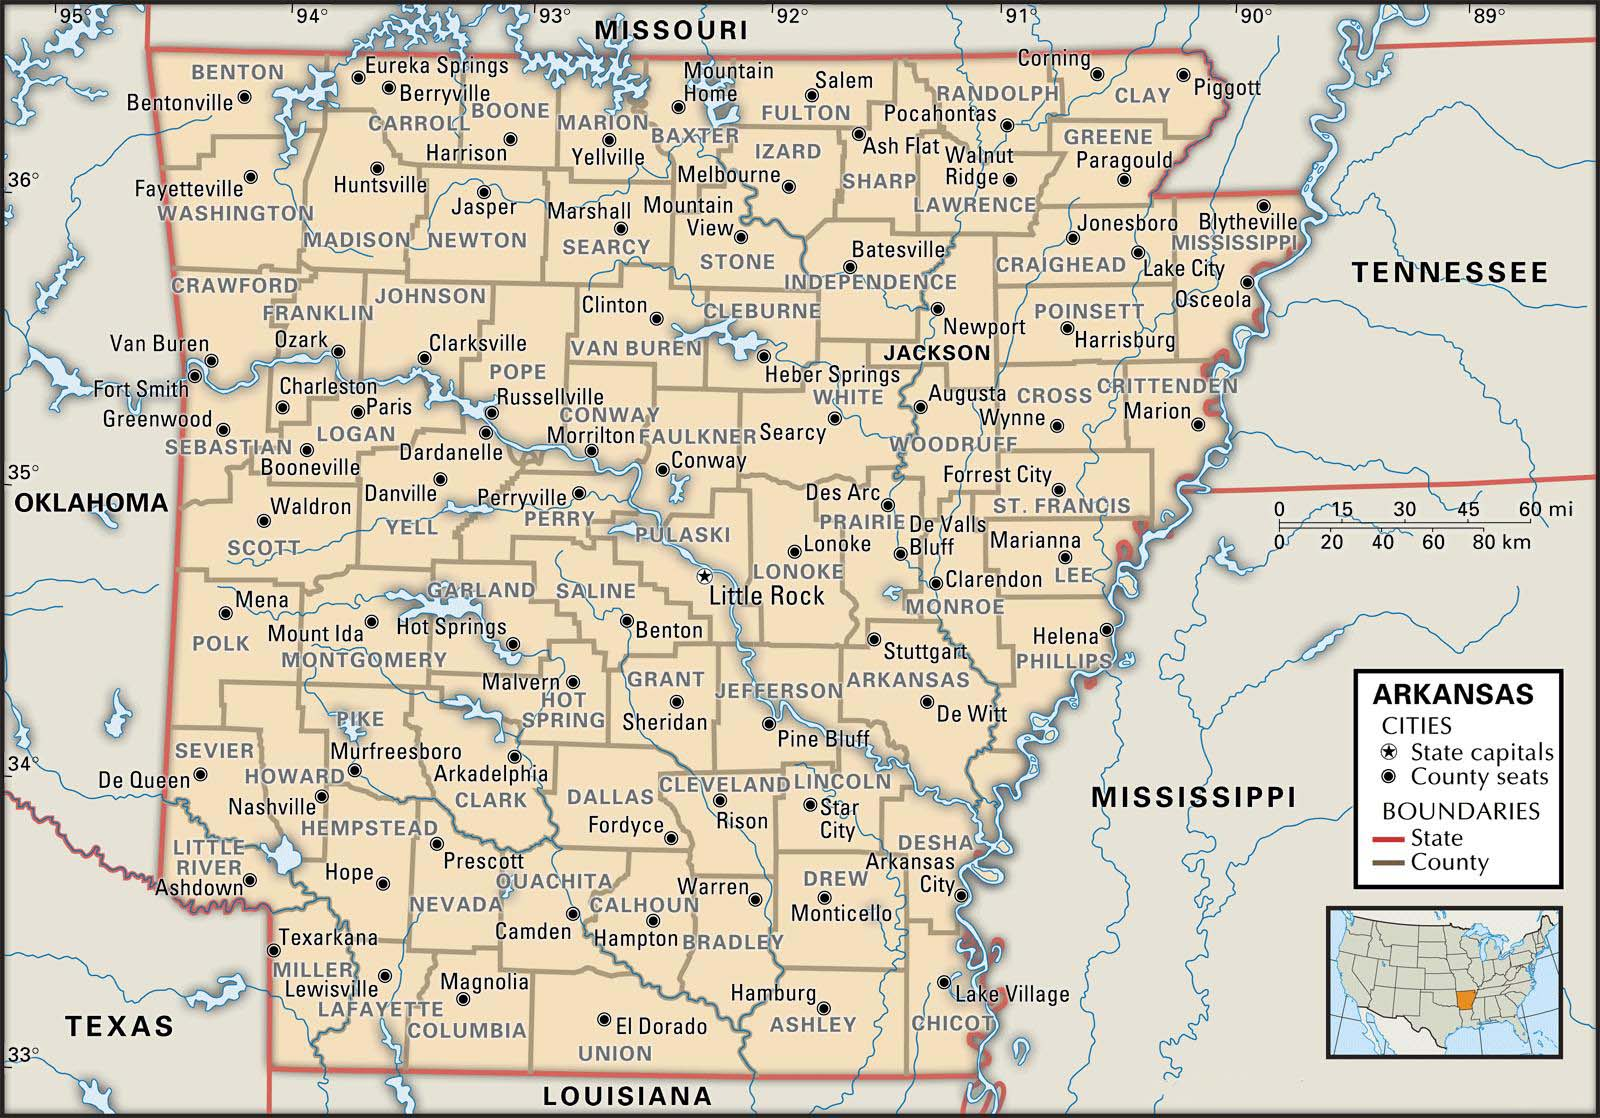 State and County Maps of Arkansas on show map of louisiana, real map of louisiana, google maps louisiana, full size map of louisiana, atlas of louisiana, towns in louisiana, towns of louisiana, all cities in louisiana, usa map louisiana, printable map of state louisiana, map of cities of louisiana, early maps of louisiana, political map of louisiana, marksville louisiana, physical map of louisiana, large map of louisiana, beaches of louisiana, county map of louisiana, maps by parish louisiana, satellite map of louisiana,